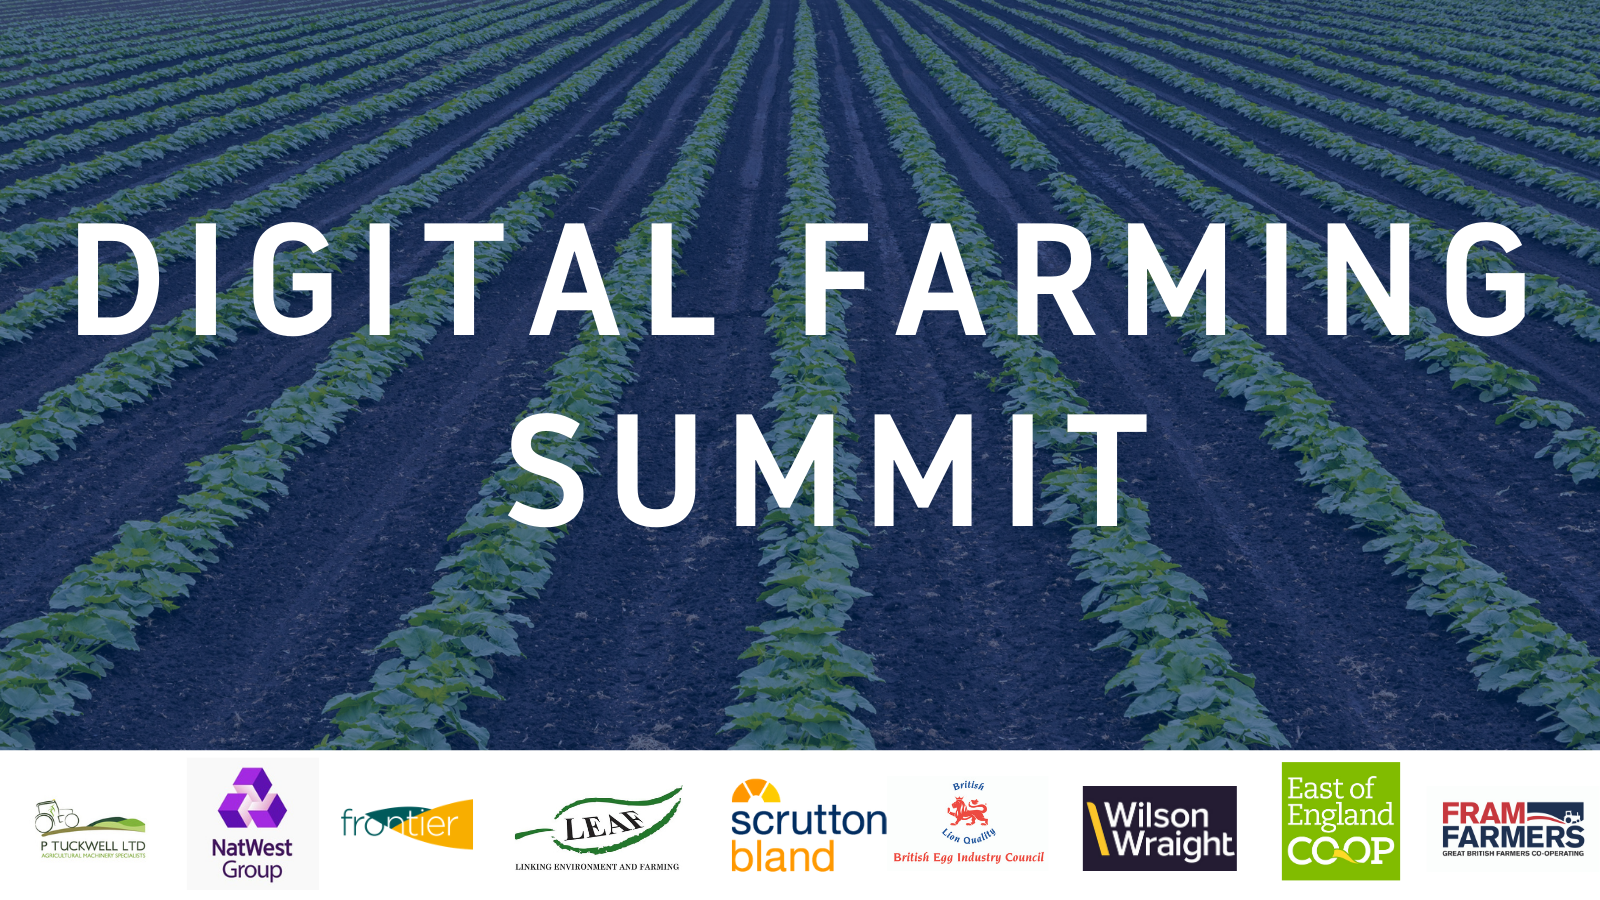 Scrutton Bland leads Digital Farming Summit